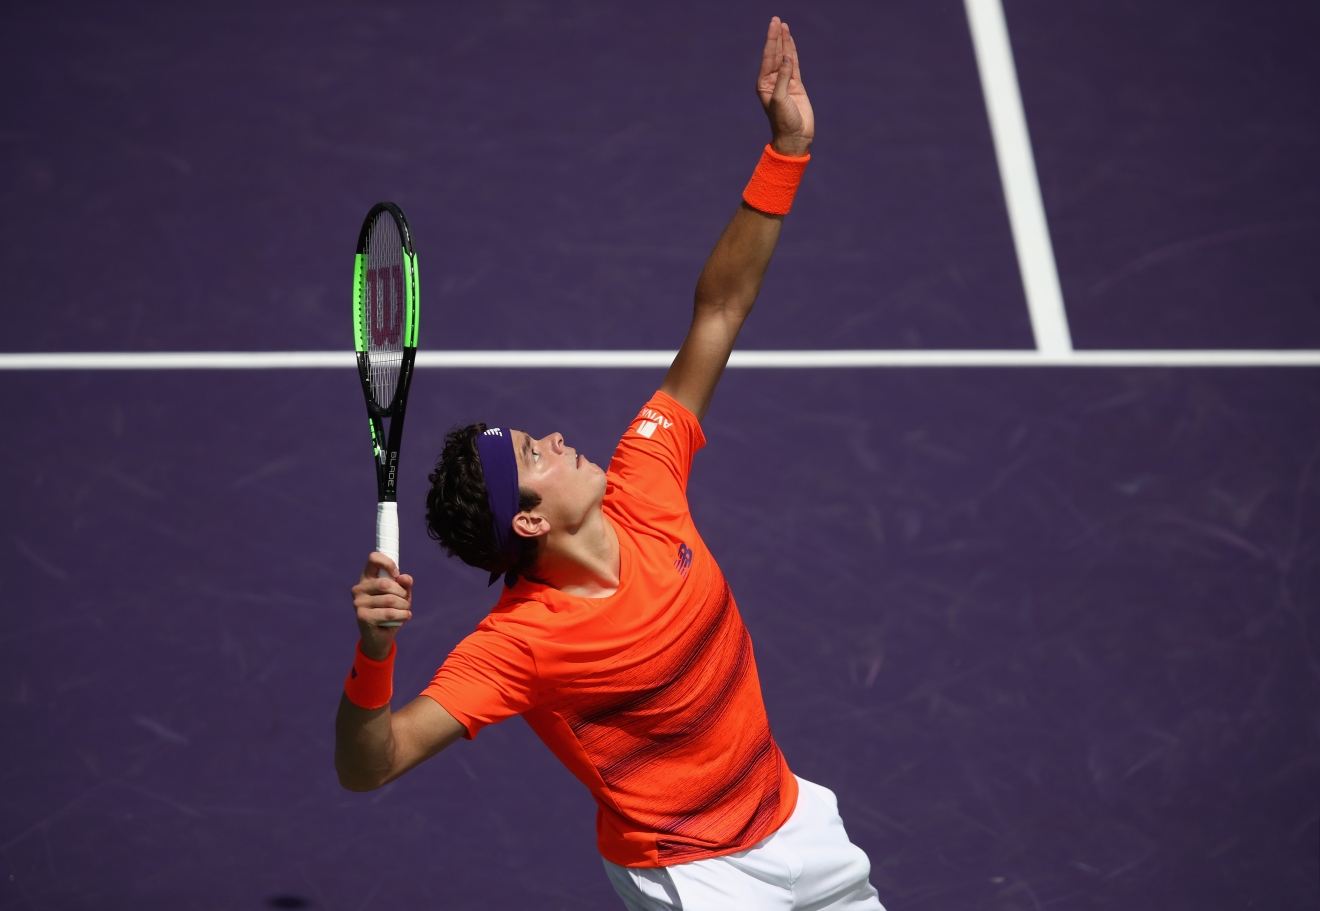 KEY BISCAYNE, FL - MARCH 24:  Milos Raonic of Canada in action against Viktor Troicki of Serbia at Crandon Park Tennis Center on March 24, 2017 in Key Biscayne, Florida.  (Photo by Julian Finney/Getty Images)